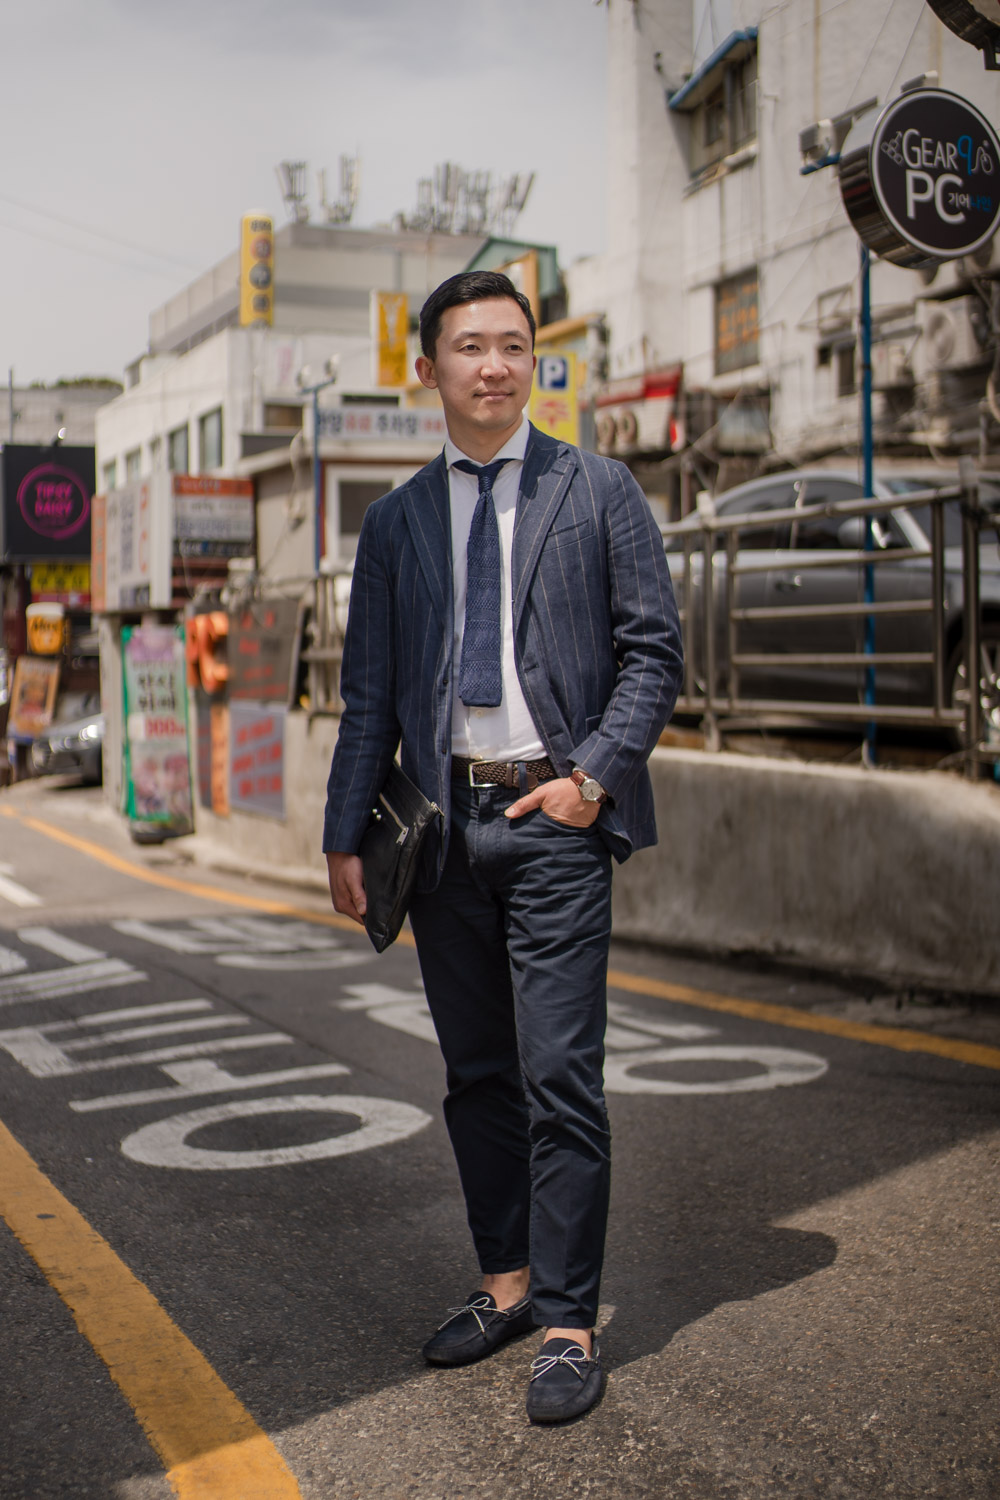 Pil-do Kim wearing a Jaeger-LeCoultre and posing in the backstreets of the Cheongdam district of Seoul. Tim Franco for the New York Times